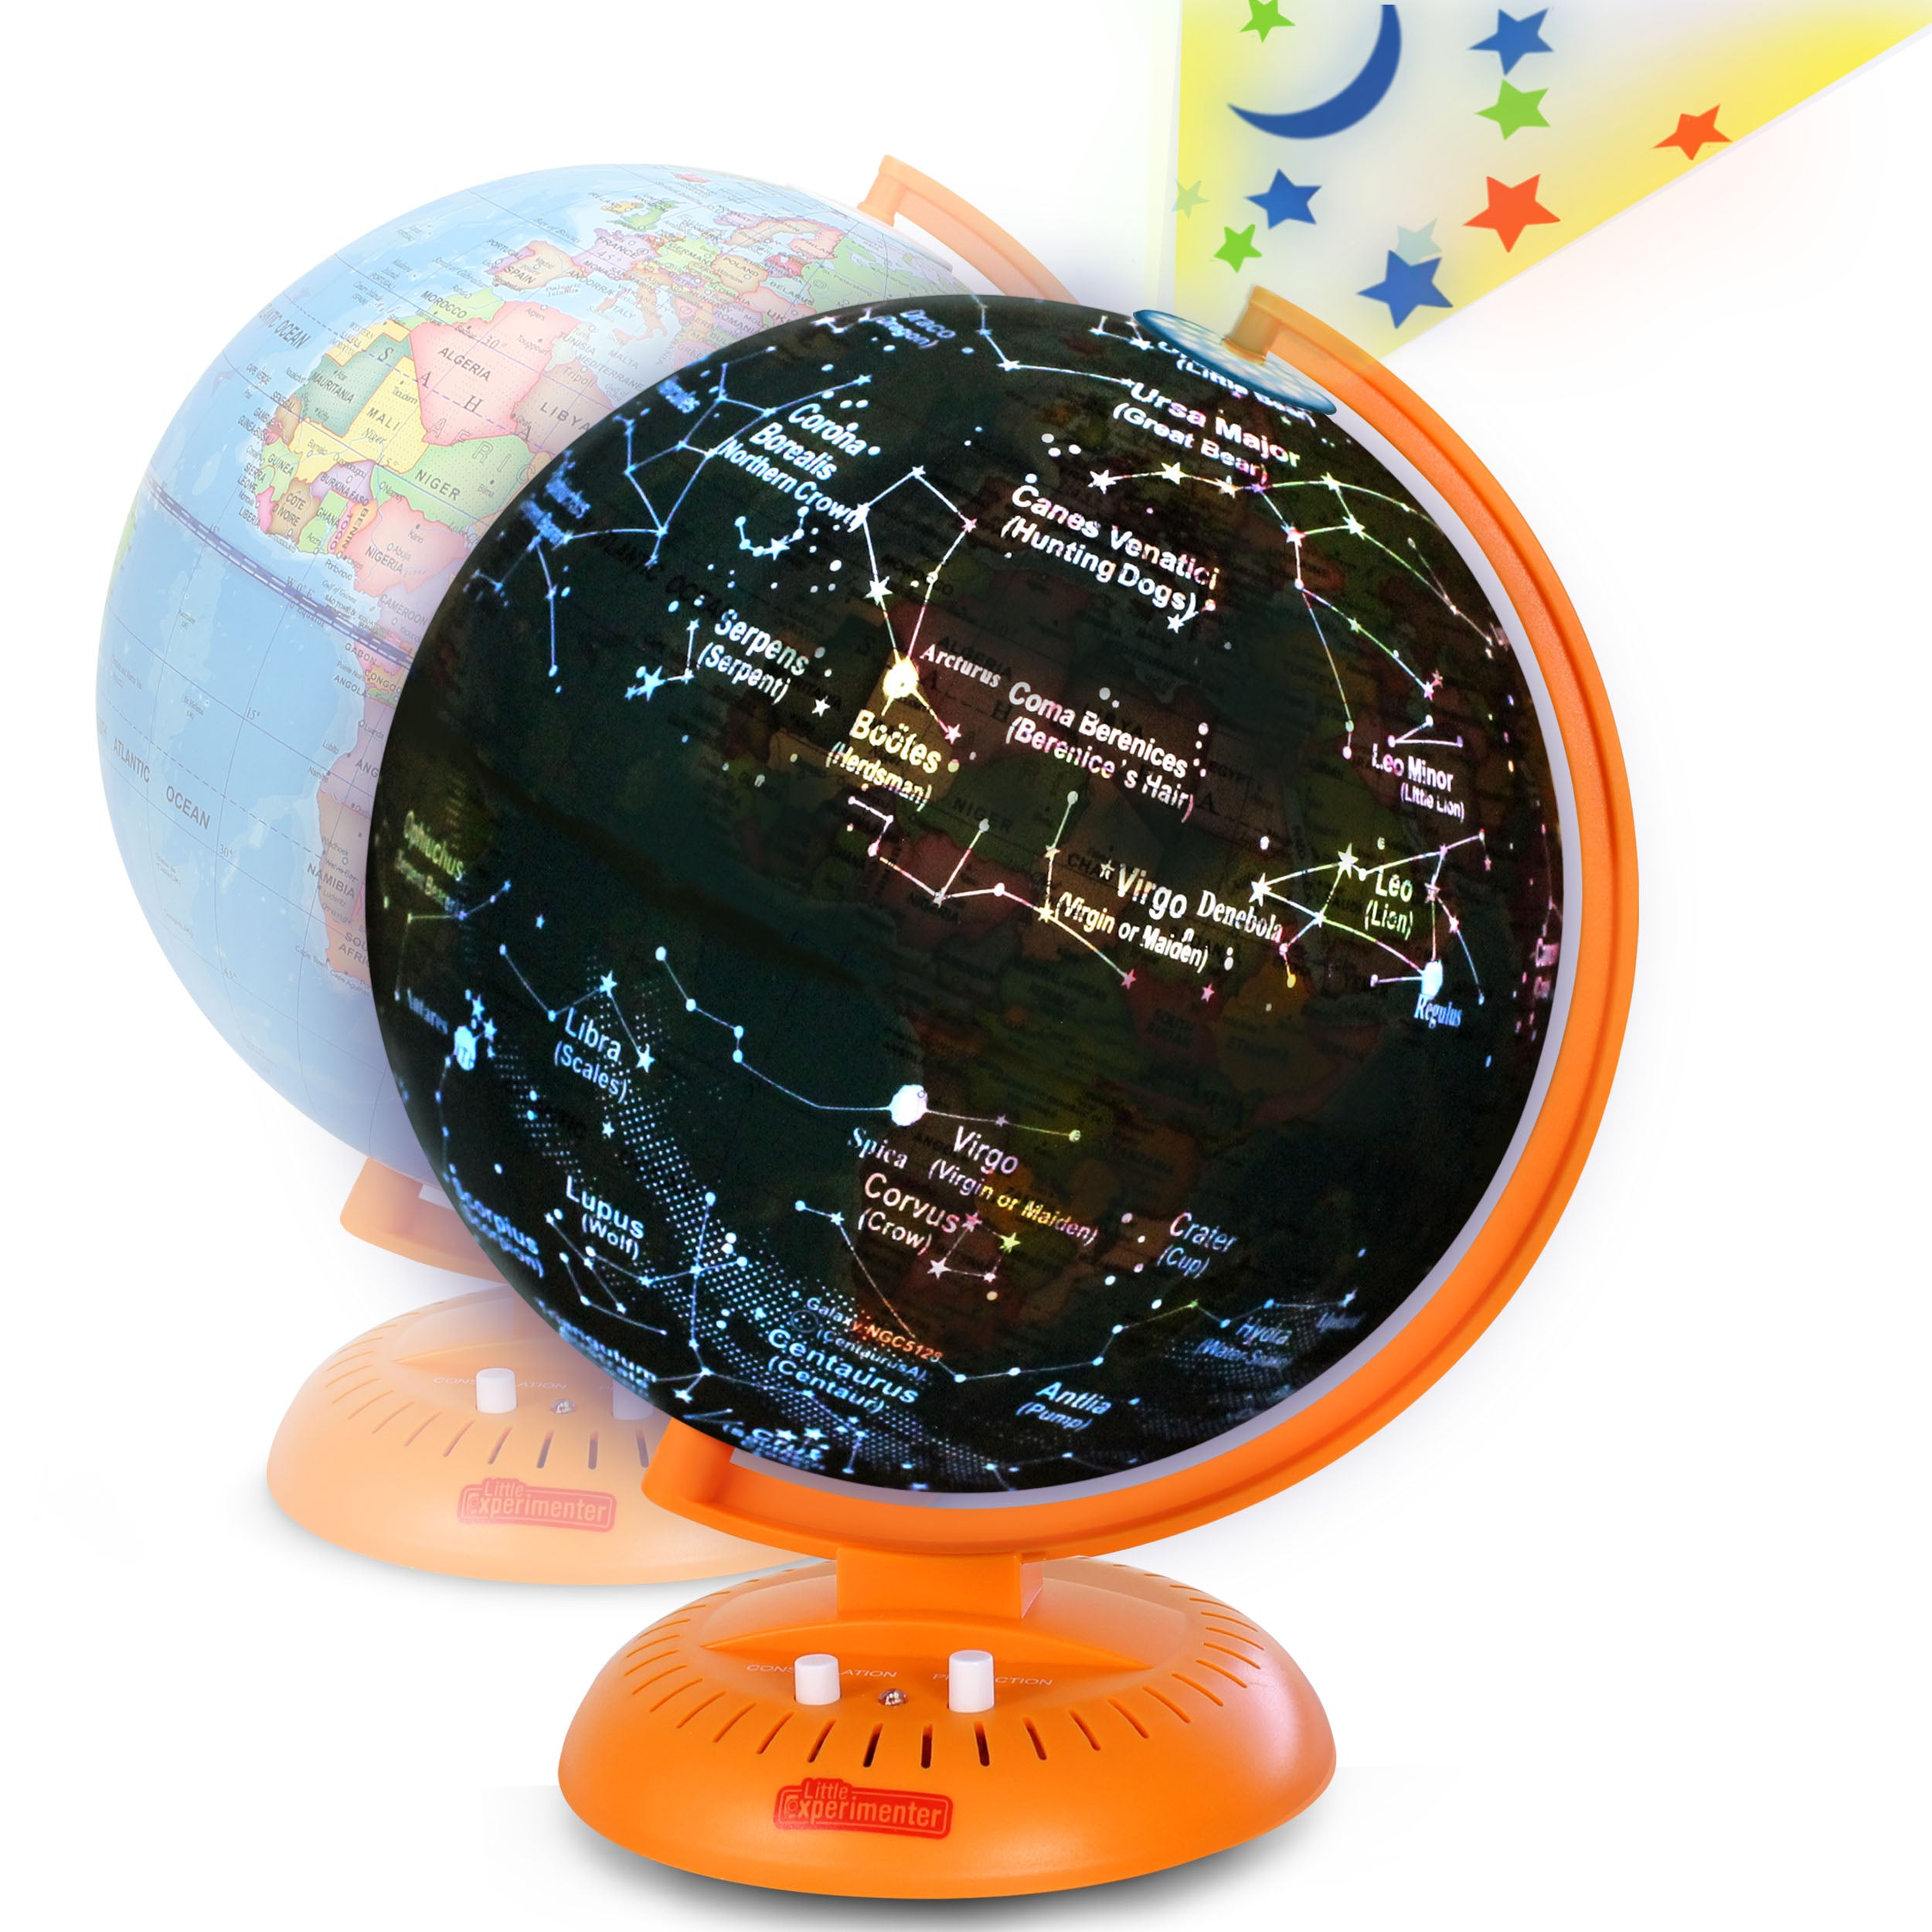 Globe For Kids 3 In 1 World Globe With Illuminated Star Map And Built Littleexperimenter